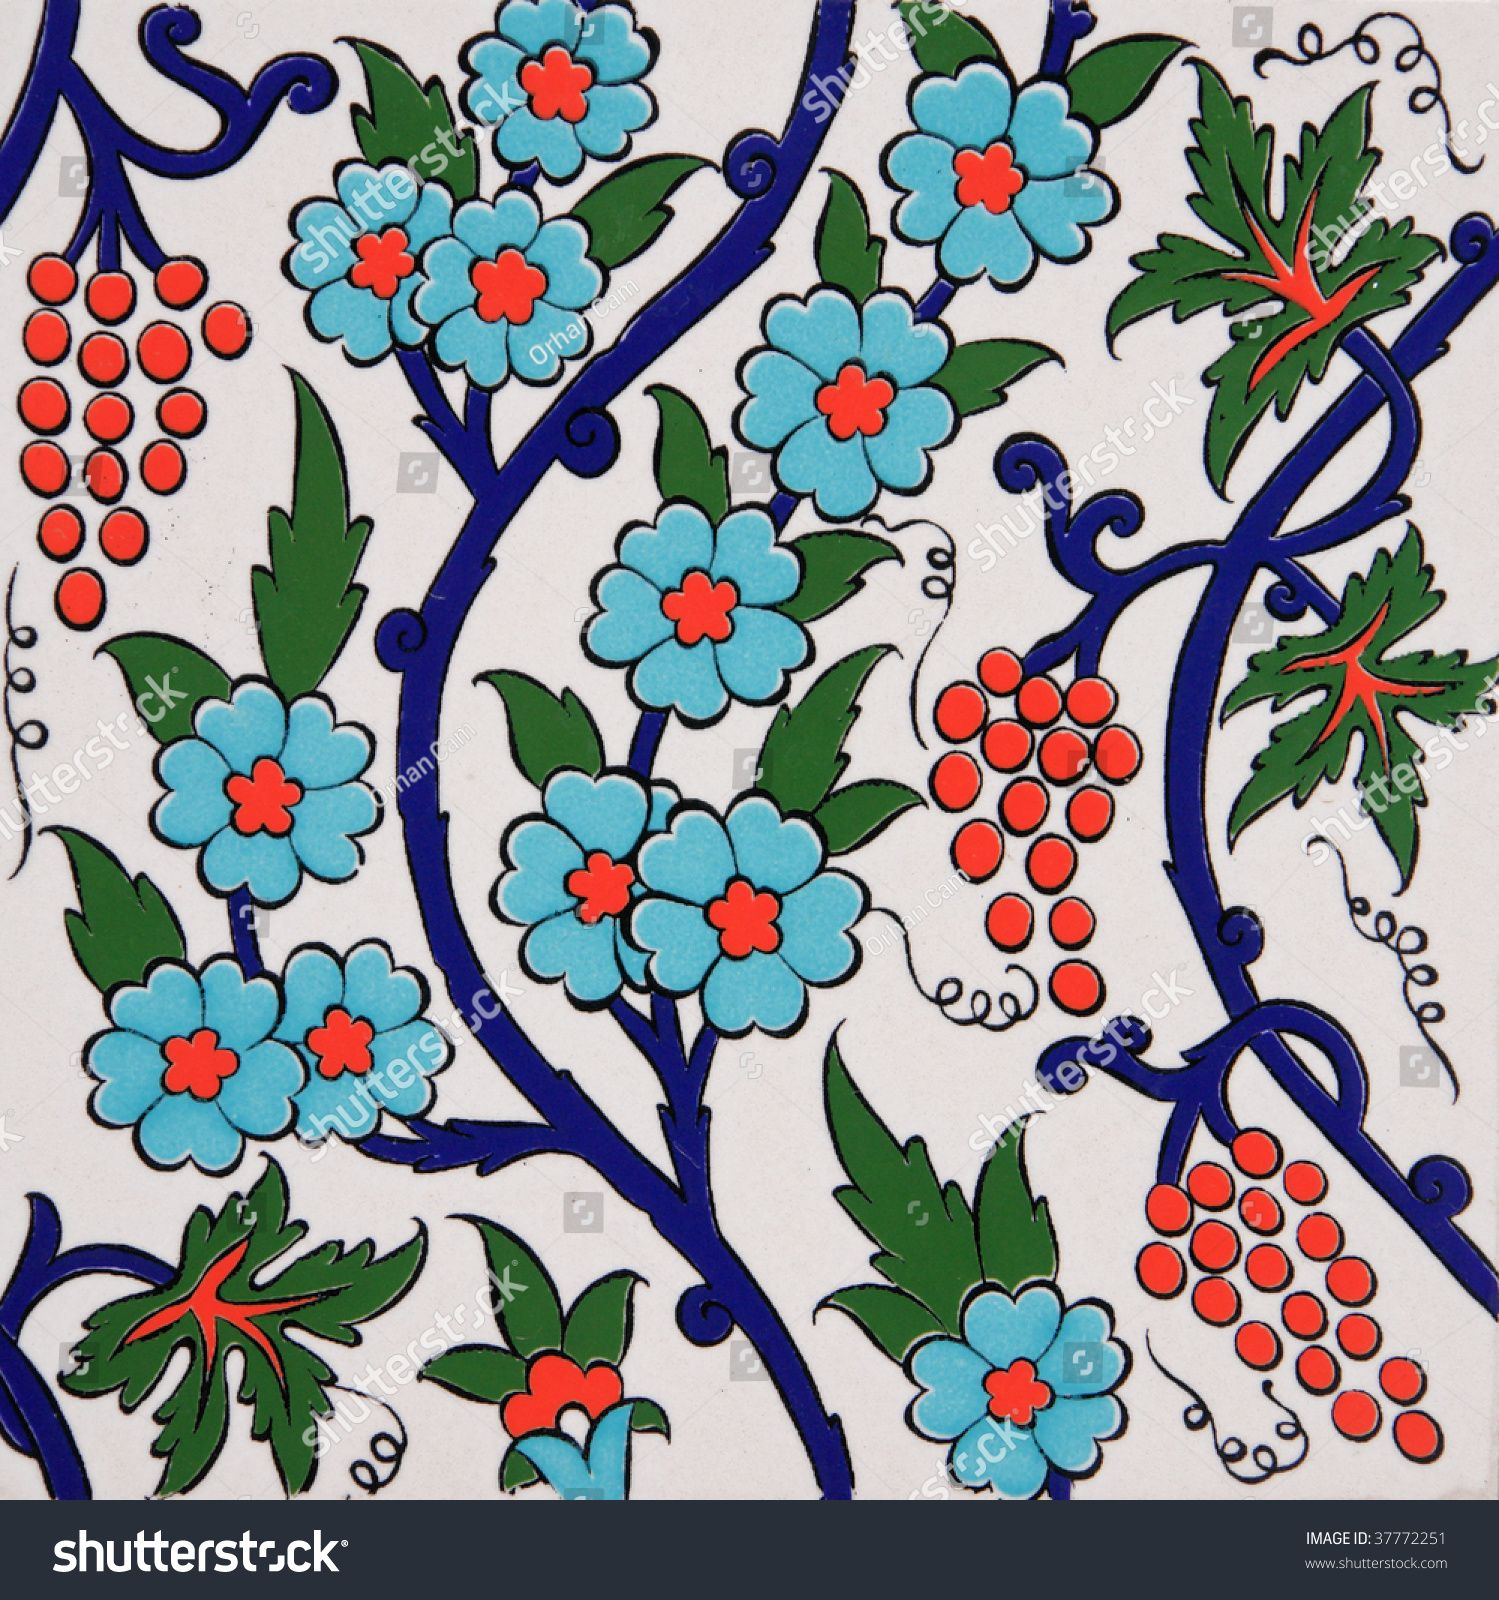 Turkish artistic wall tile - floral pattern | Stenciling | Pinterest ...